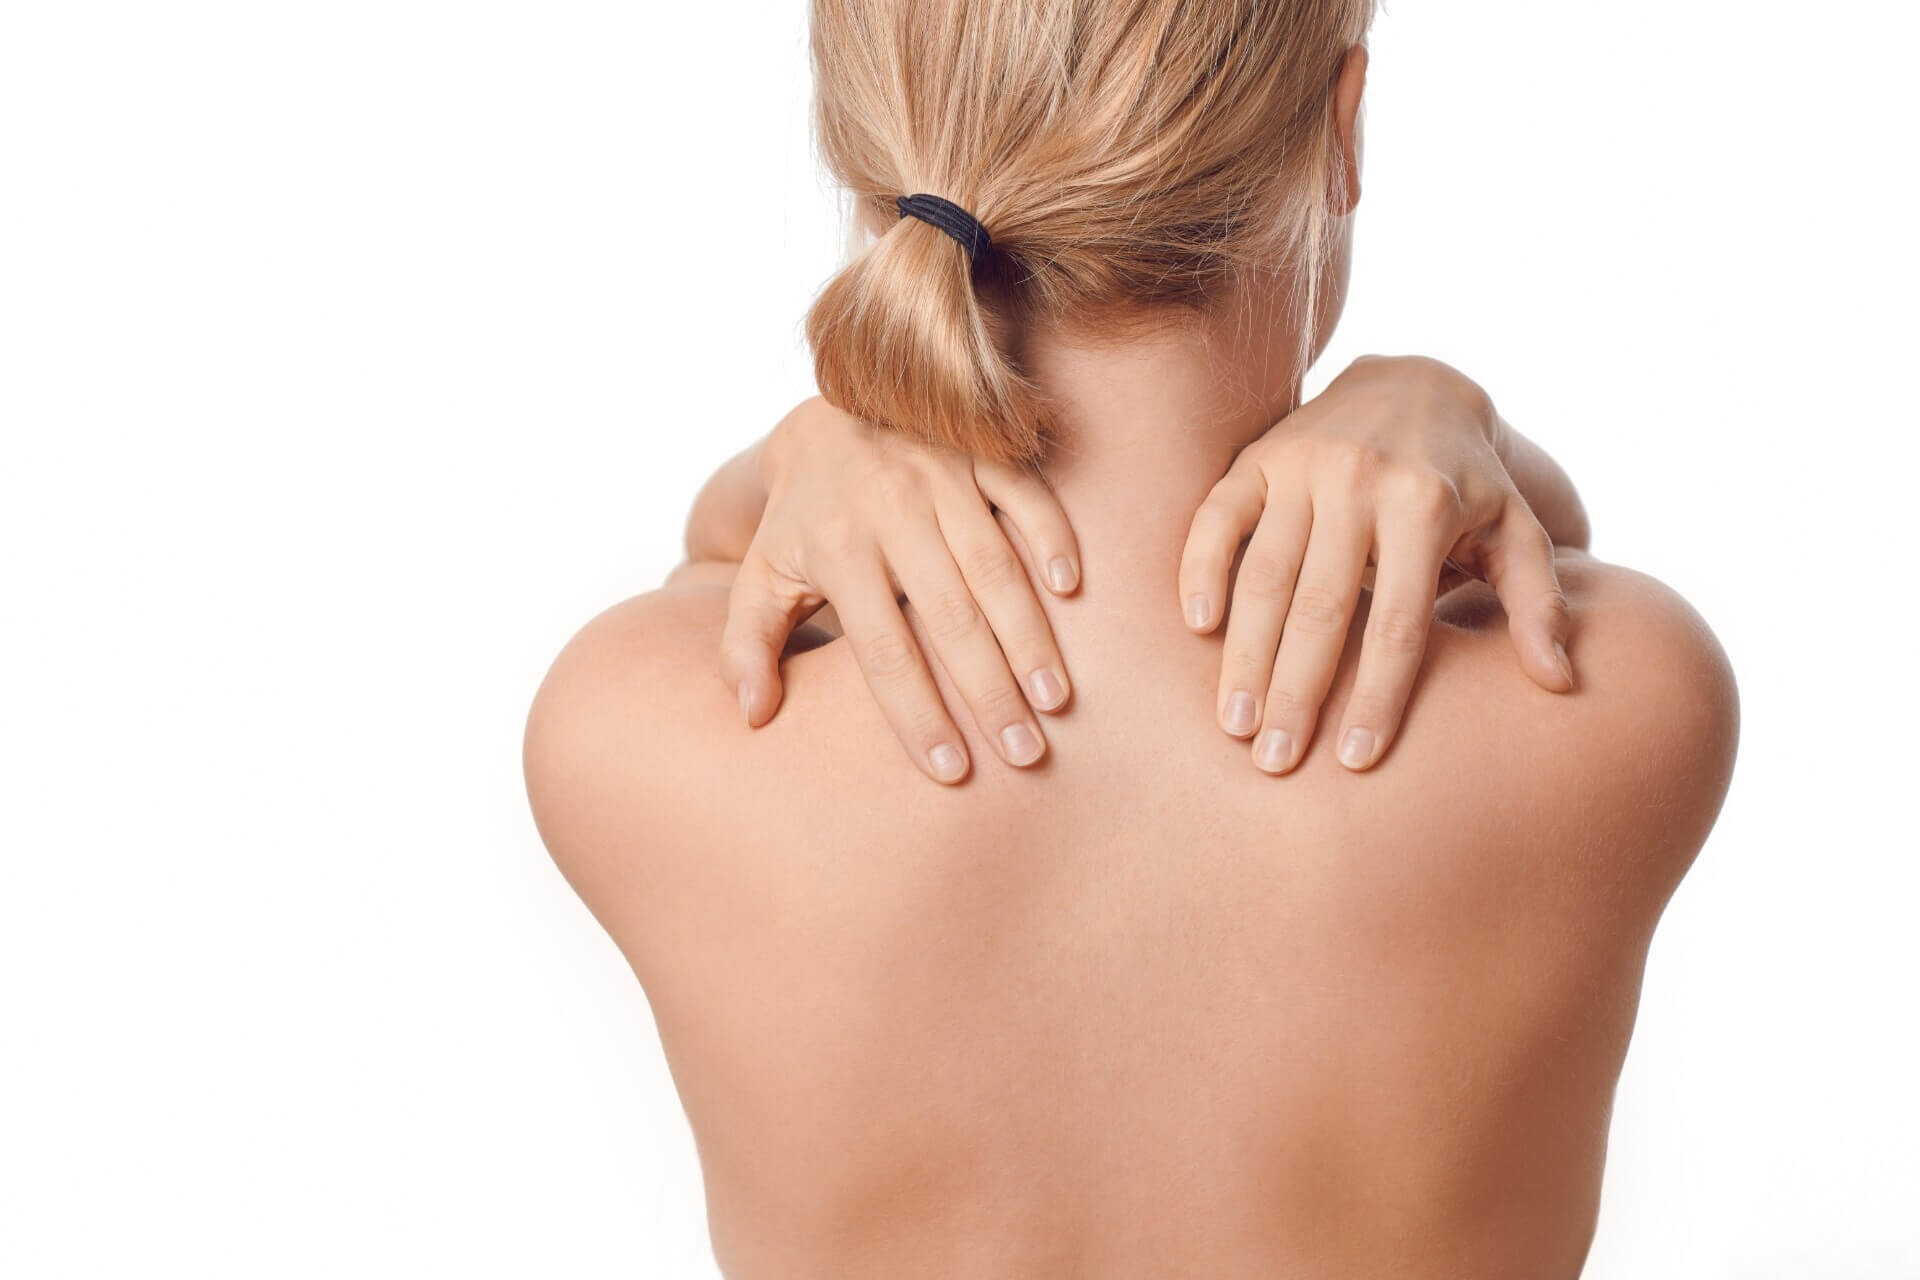 Seattle Upper Back Liposuction: Dispelling Fact From Fiction